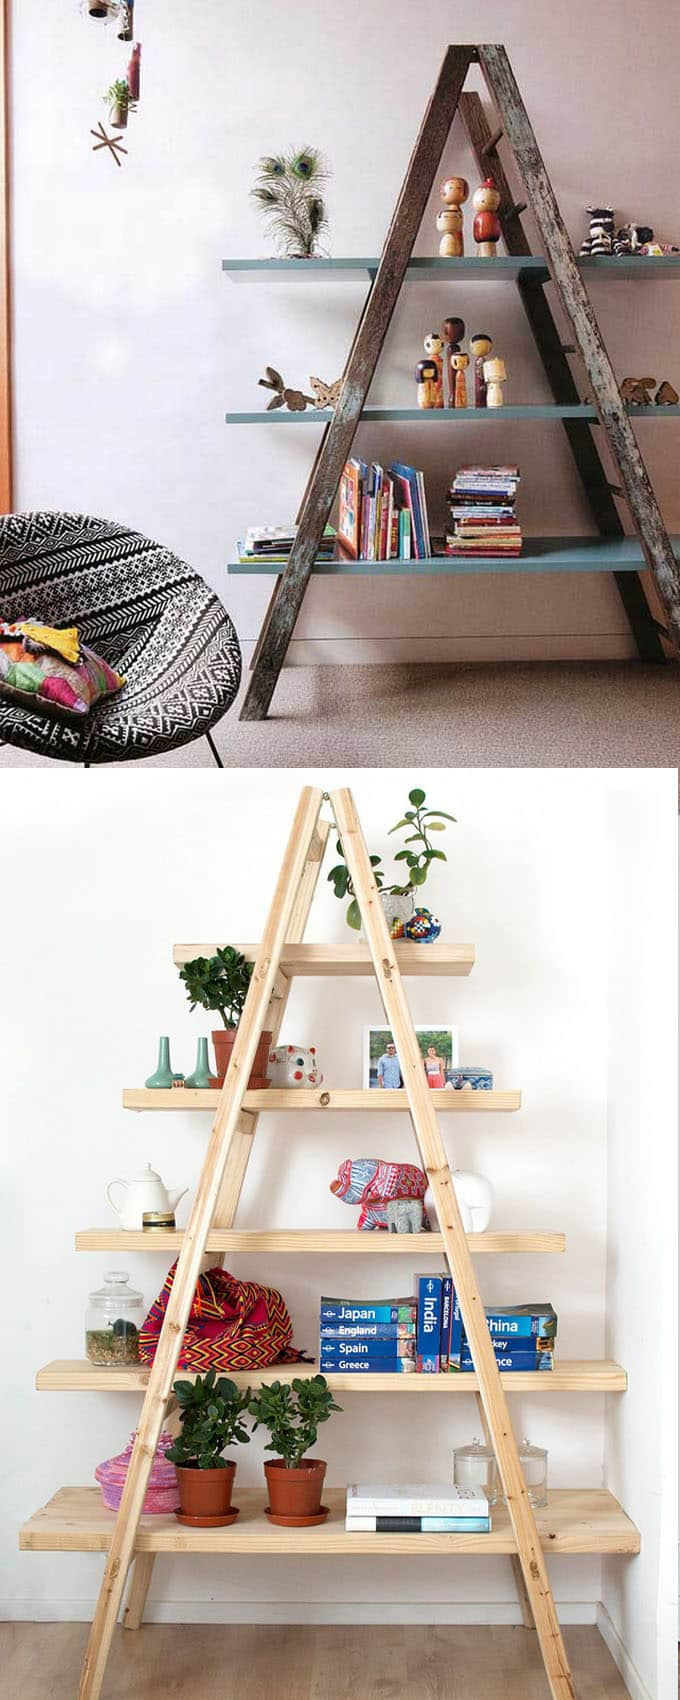 colorful boho style home decor ideas using ladders and plants